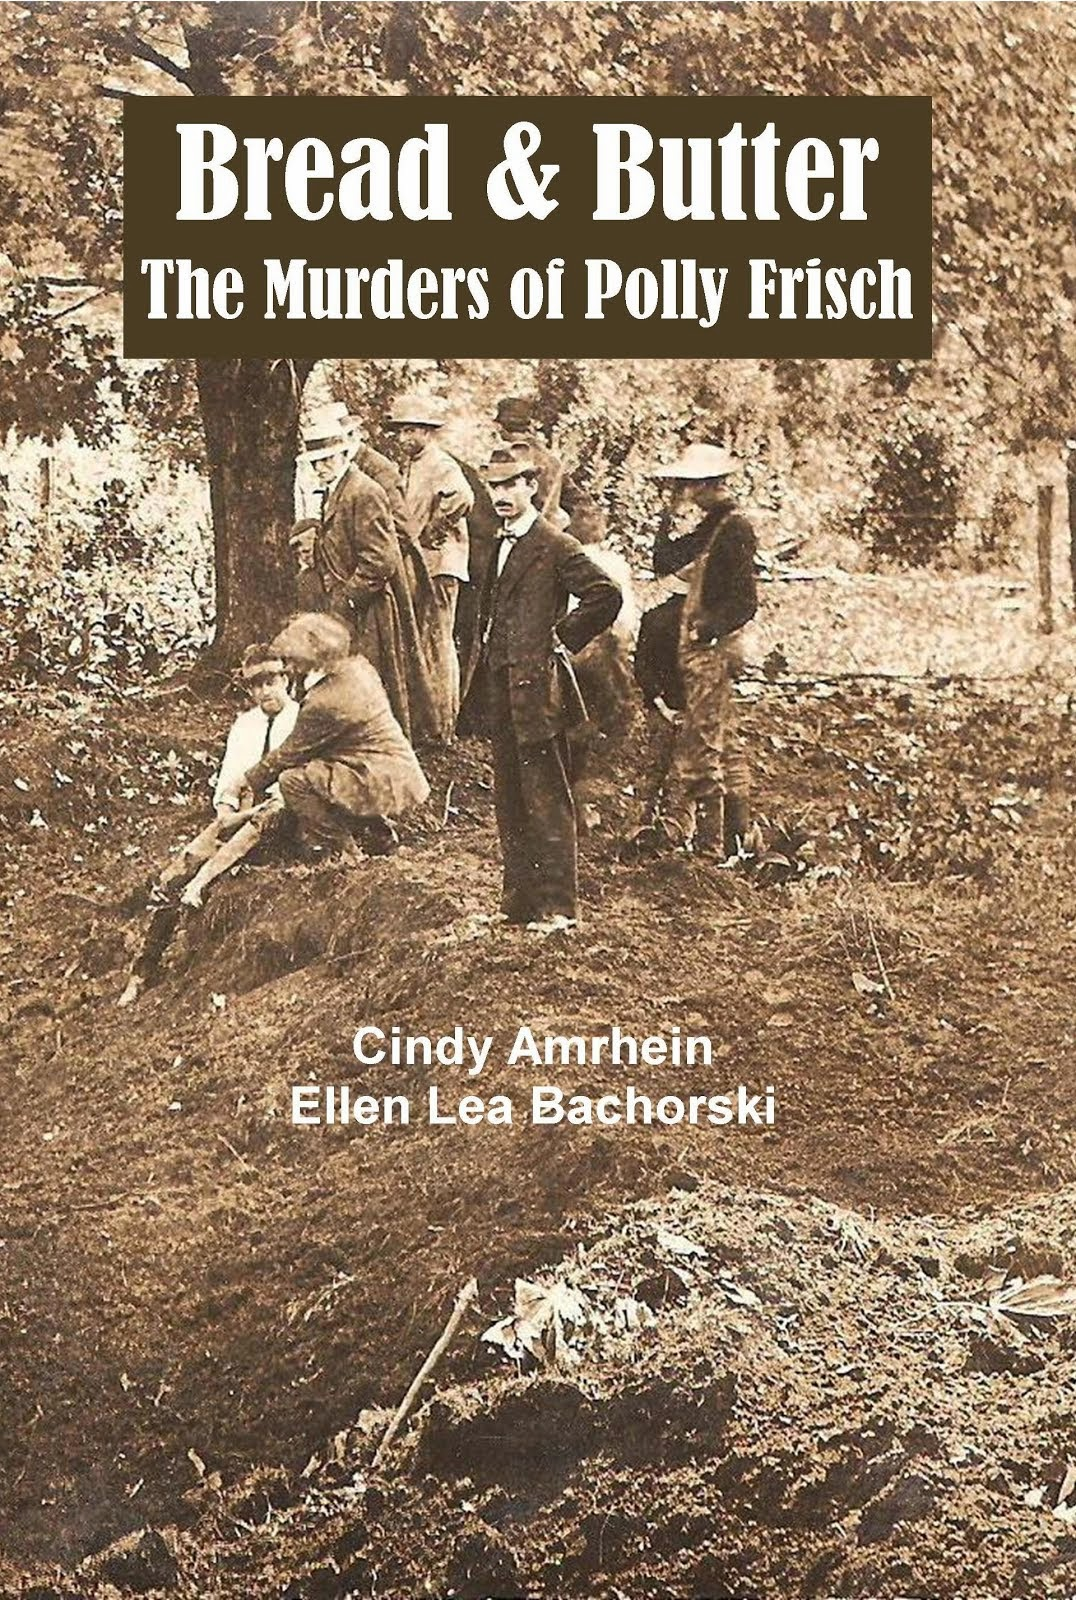 Bread & Butter the Murders of Polly Frisch